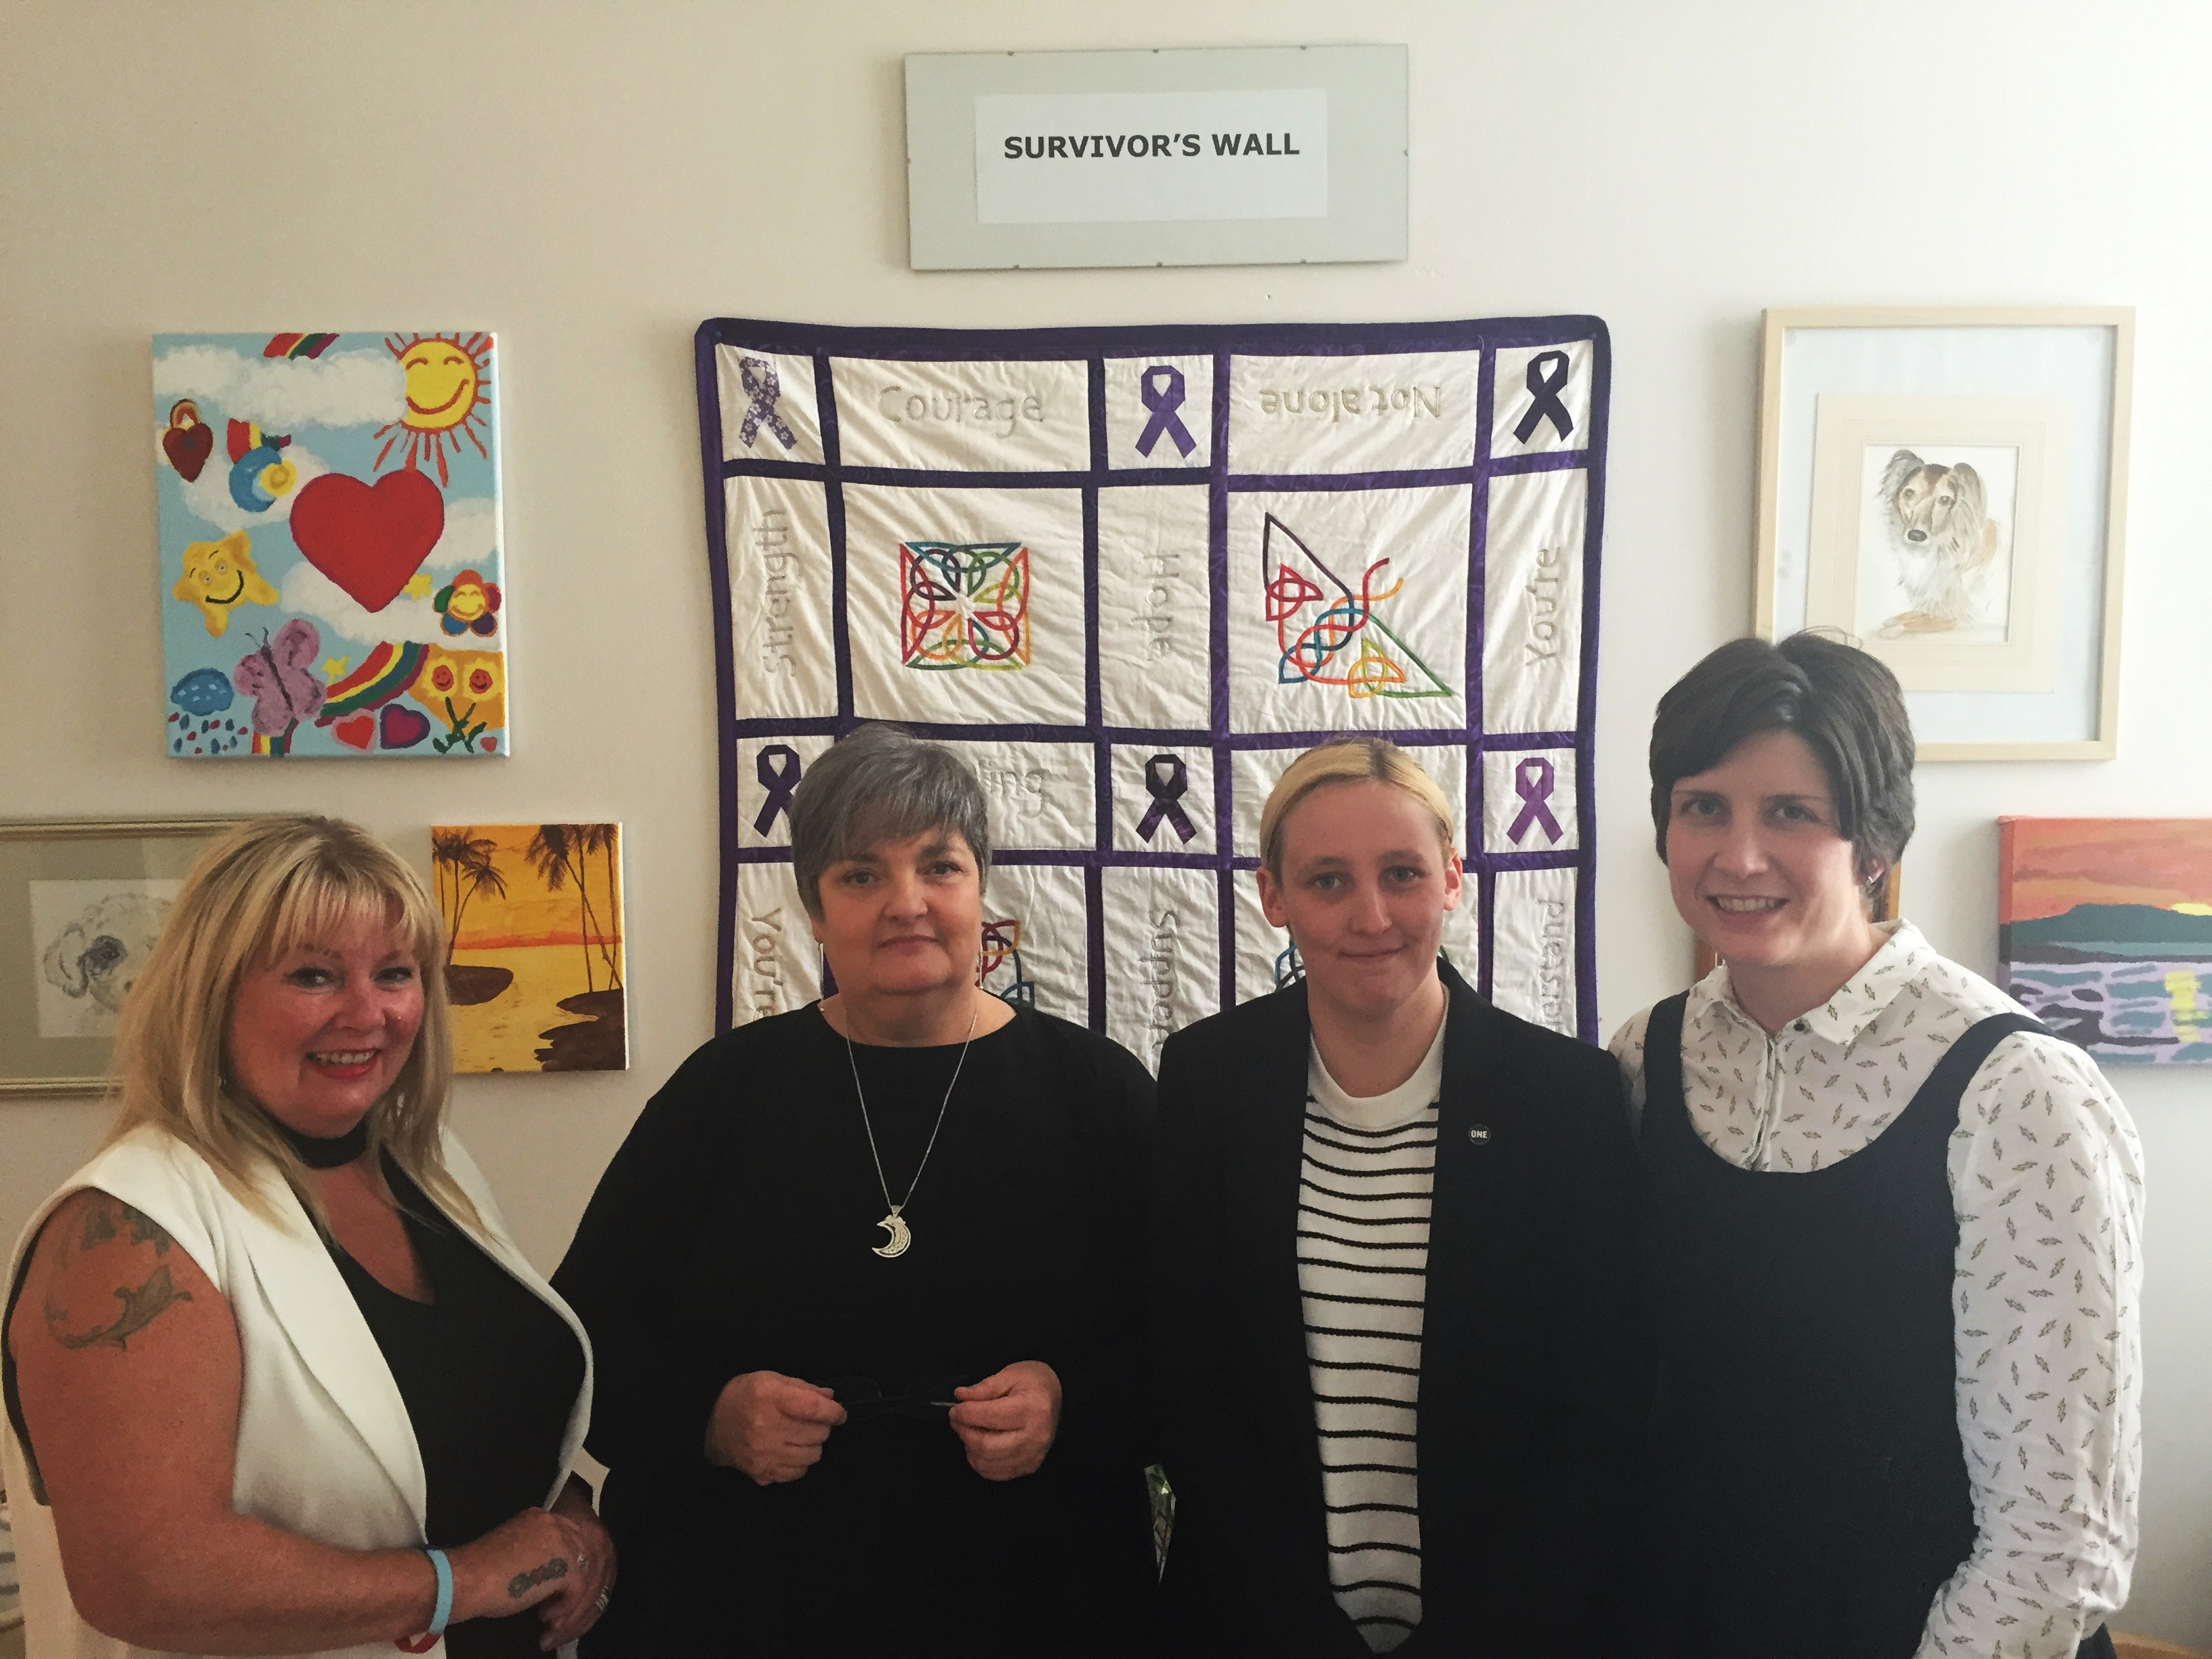 Alison Thewliss MP with Mhairi Black MP and representatives of Glasgow Rape Crisis Centre